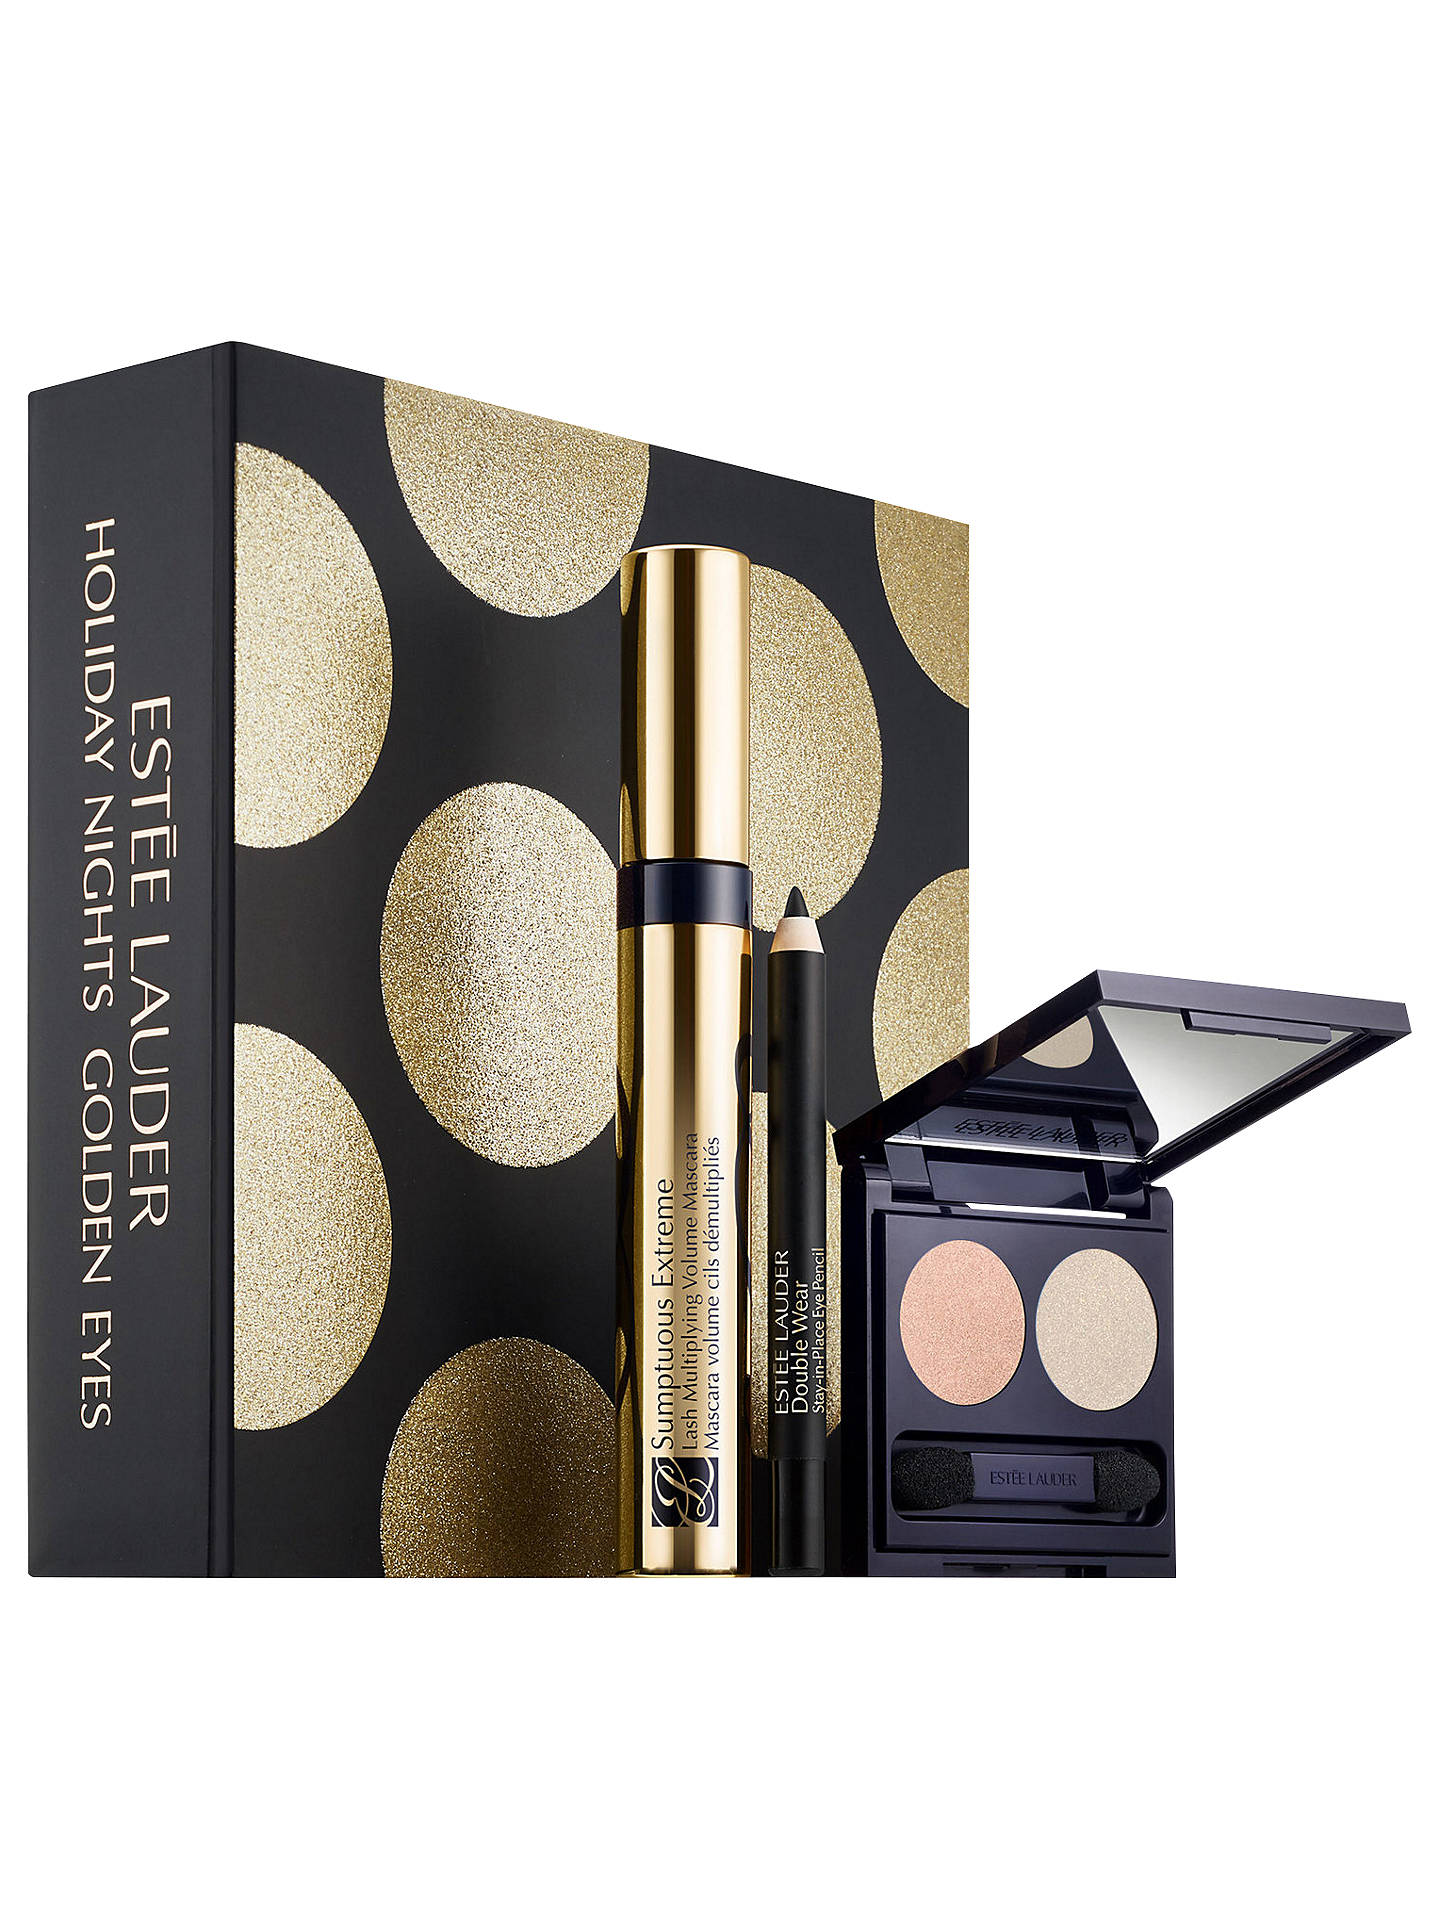 BuyEstée Lauder Holiday Nights, Golden Eyes Makeup Gift Set Online at johnlewis.com